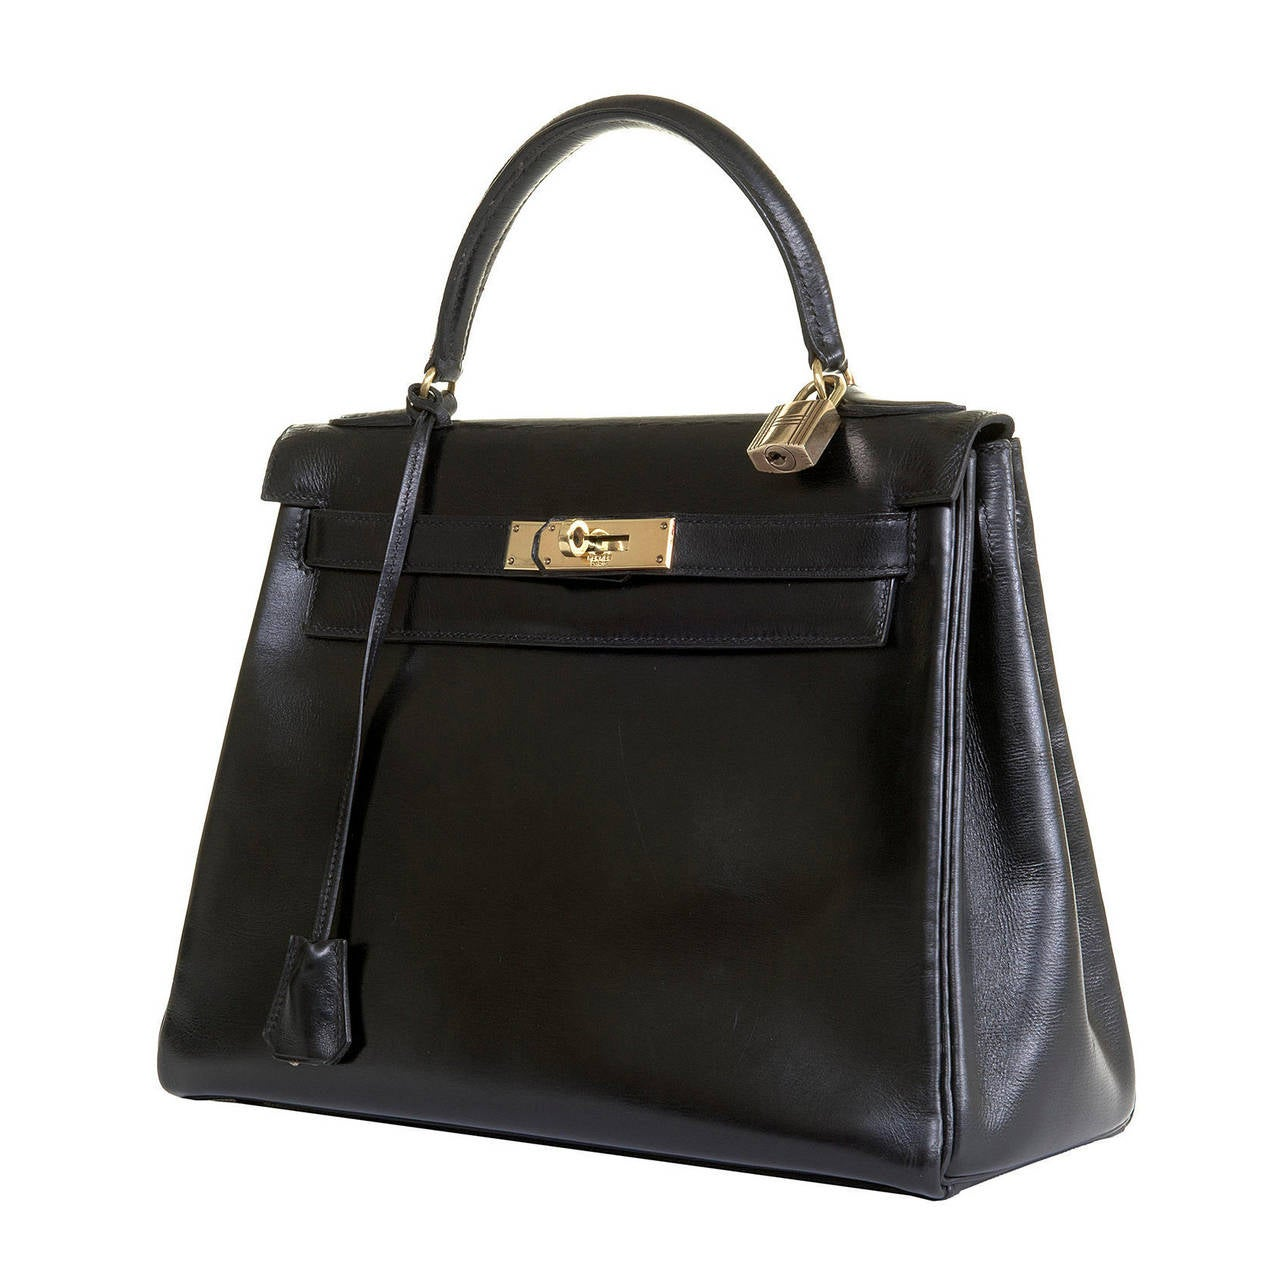 replica hermes birkin bags - A VERY RARE Vintage Hermes 29cm Kelly Bag in Black Box Leather ...